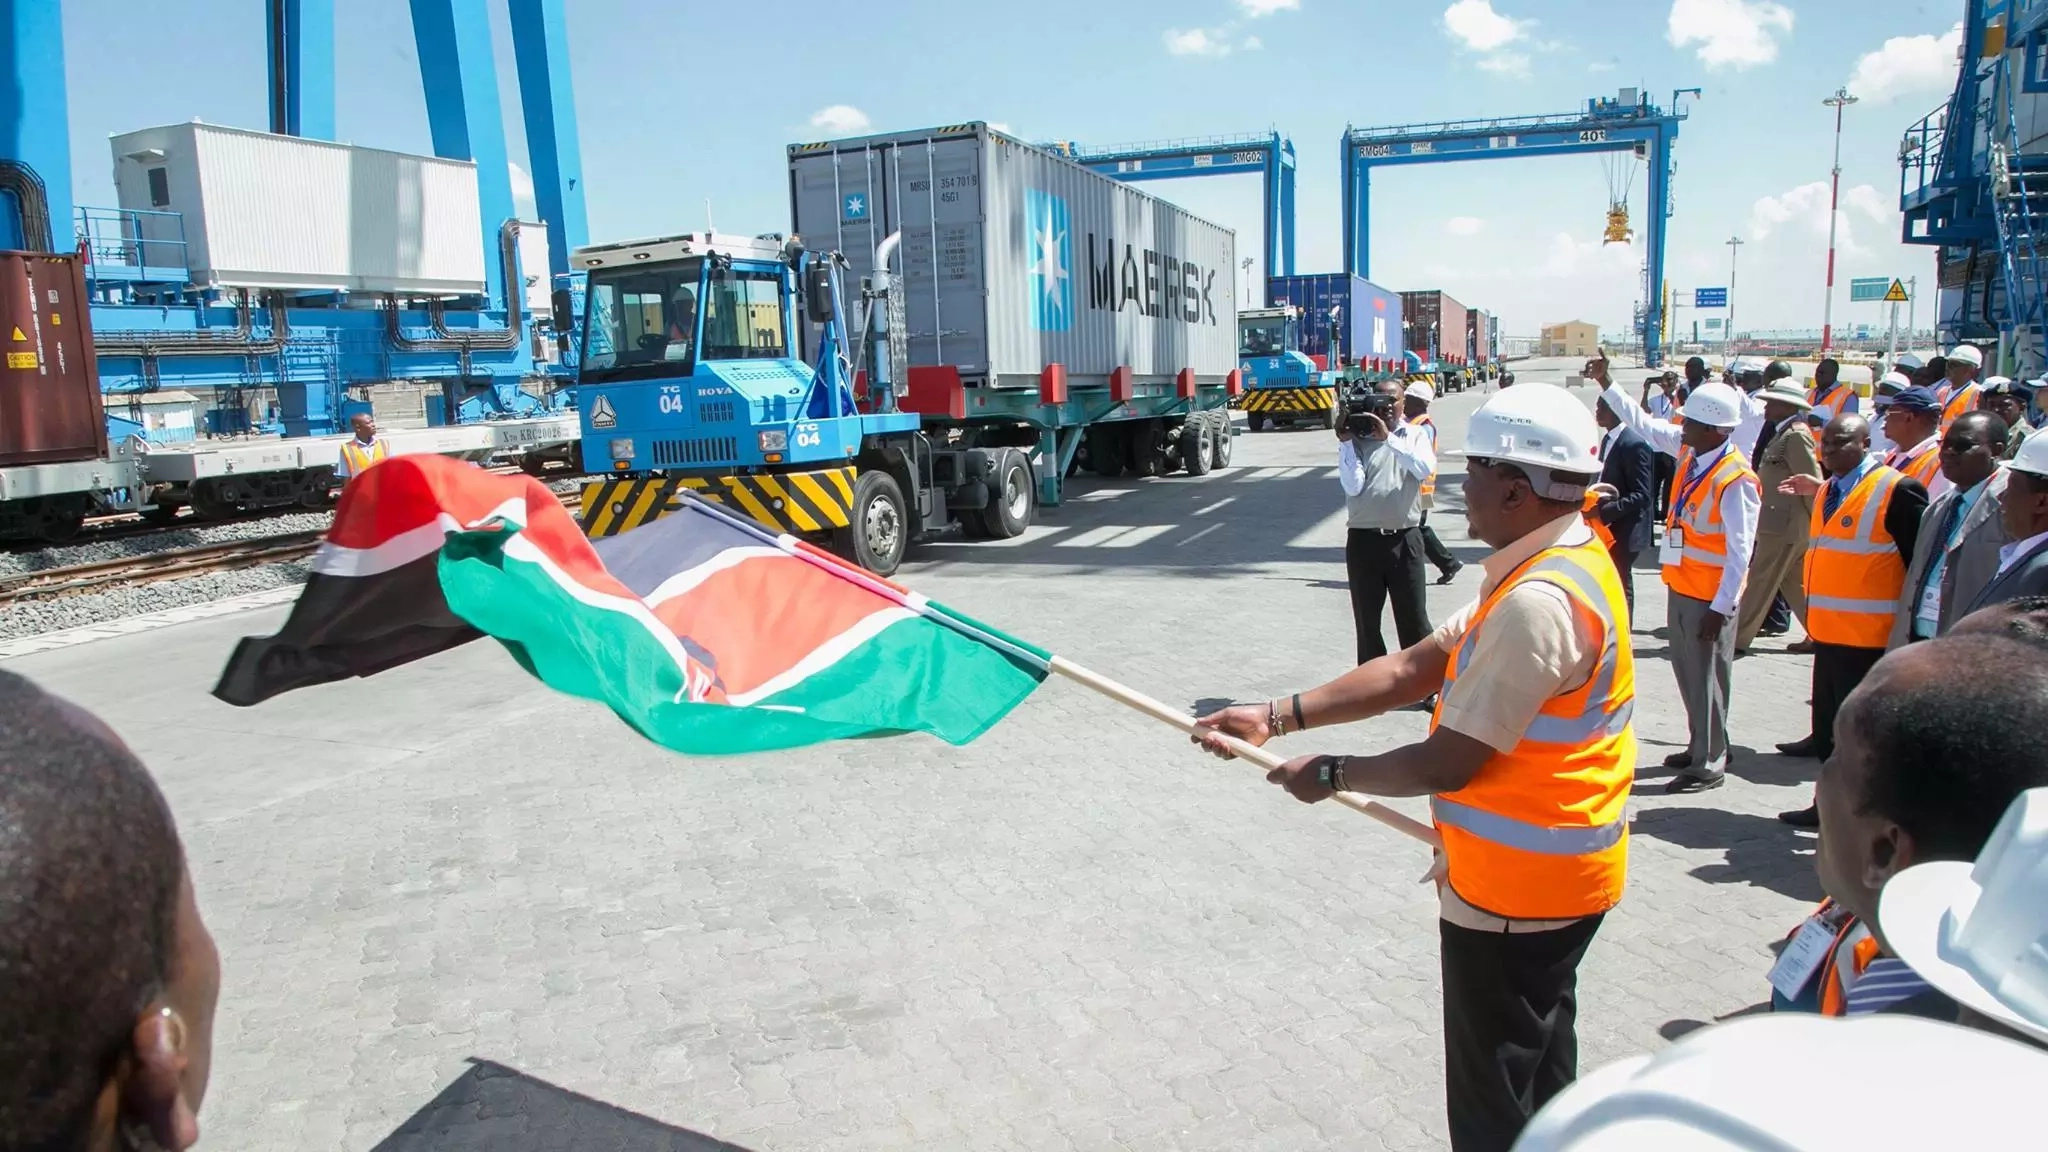 Uhuru Kenyatta Launches A Ksh 22 Billion Facility In